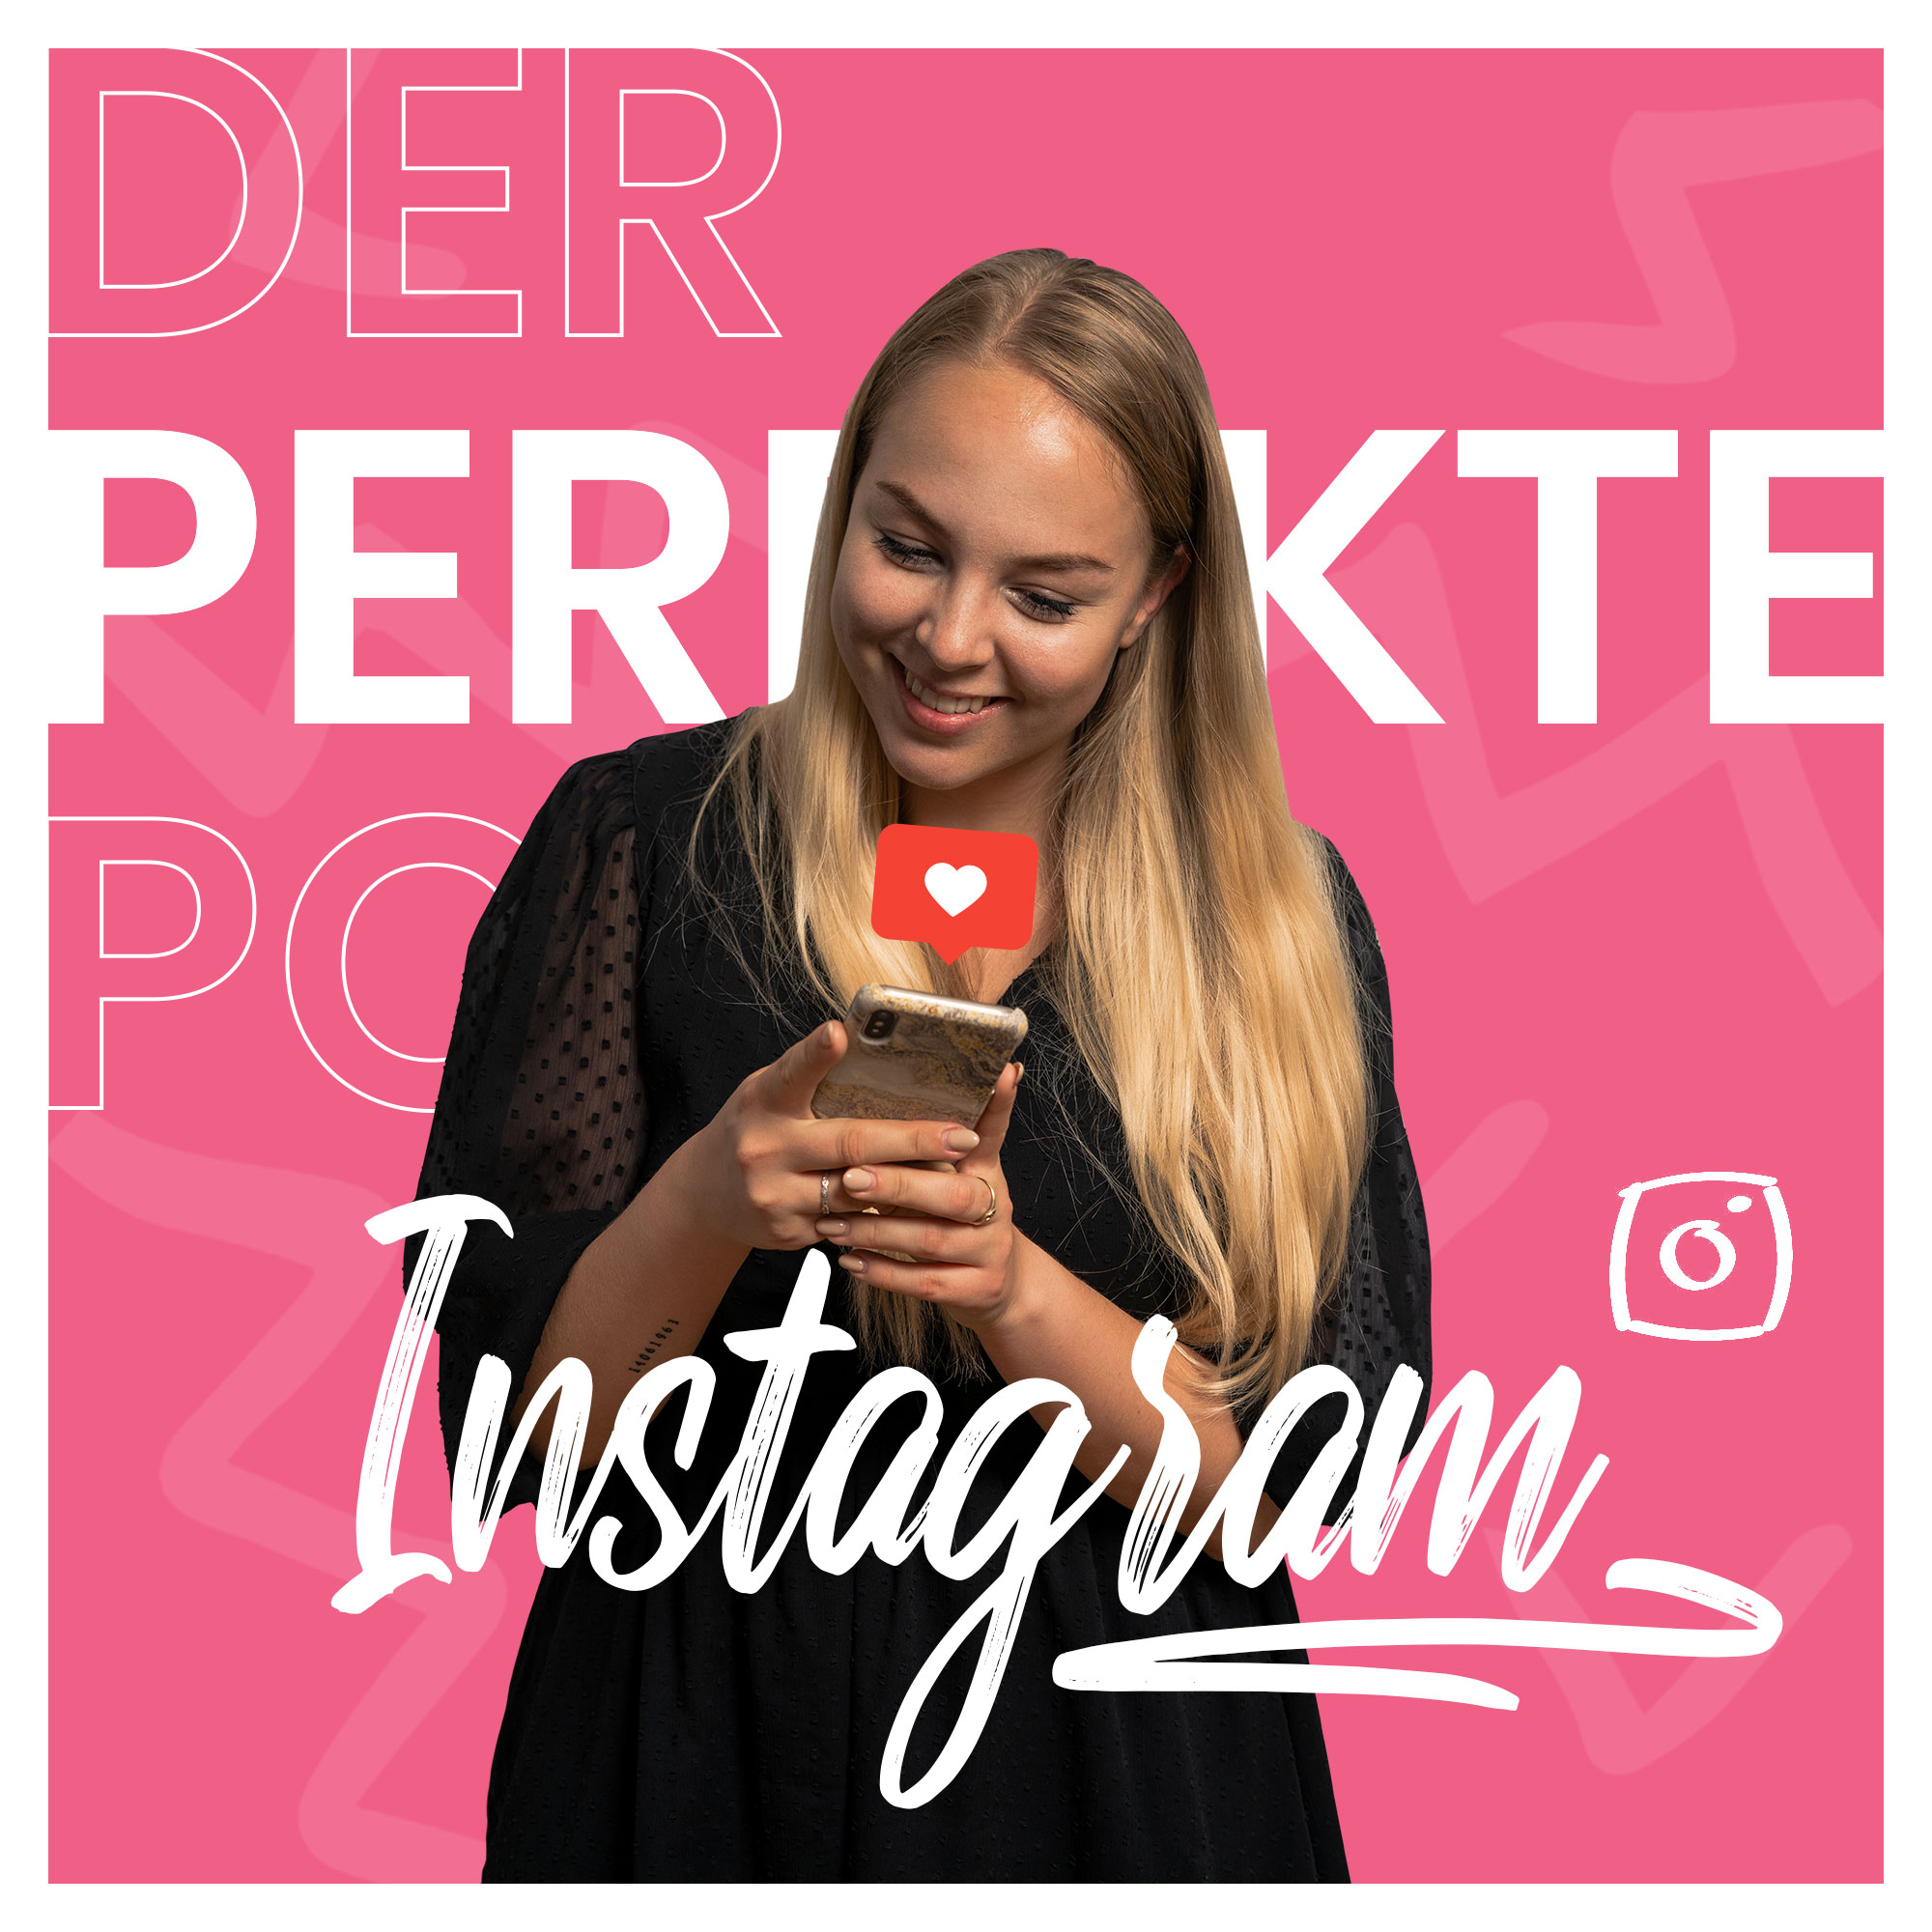 Der perfekte Instagram Post